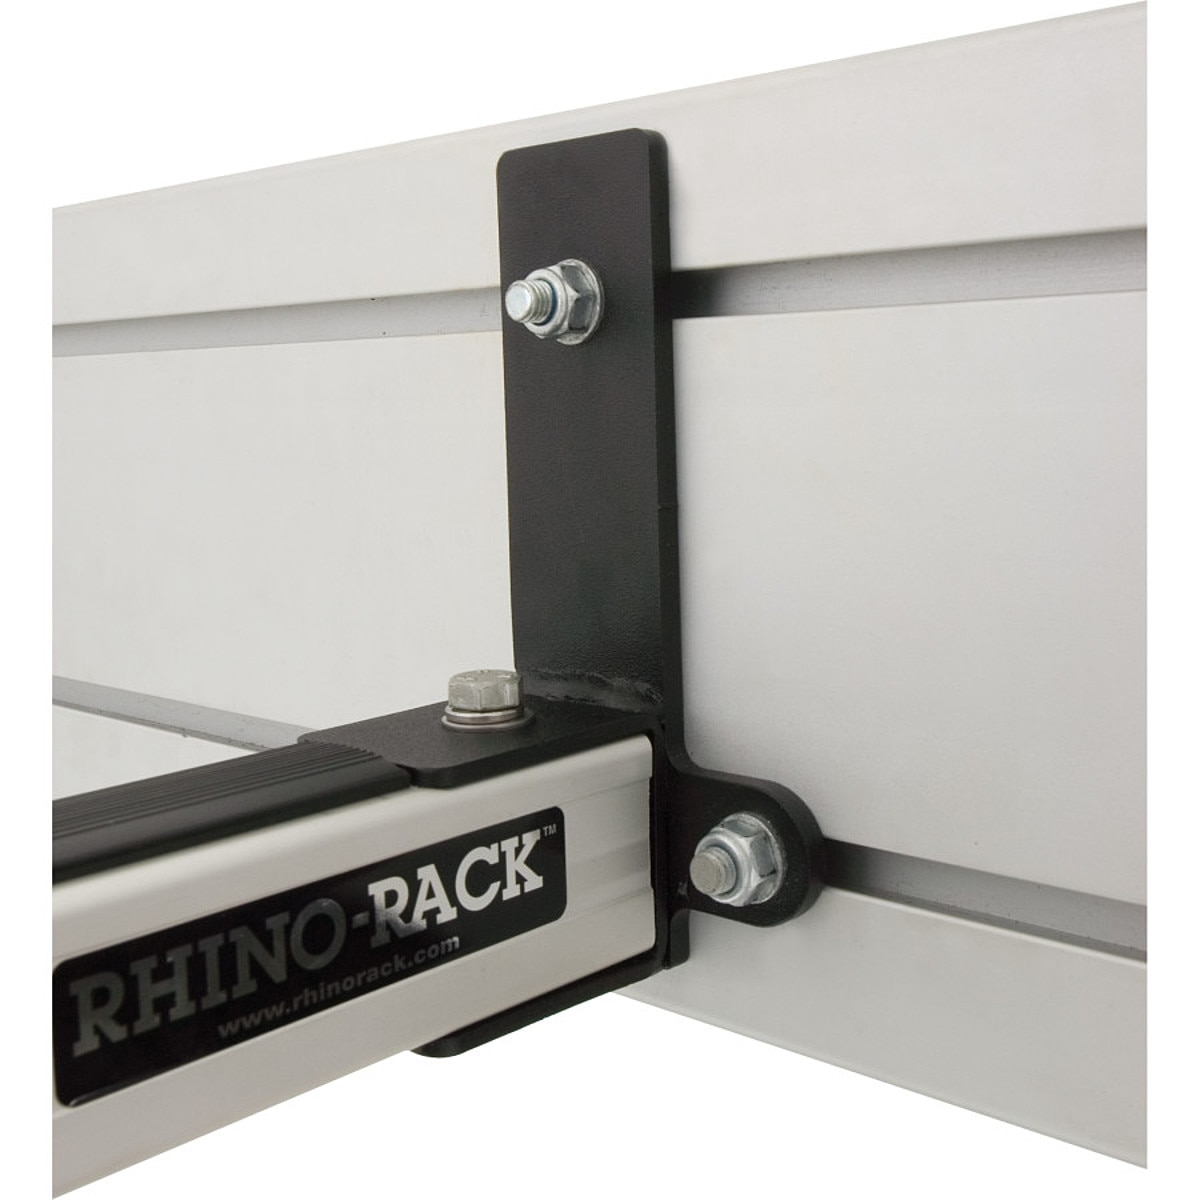 Rhino Rack Foxwing H/D Bracket Fit Kit for Rhino Rack H/D Bars